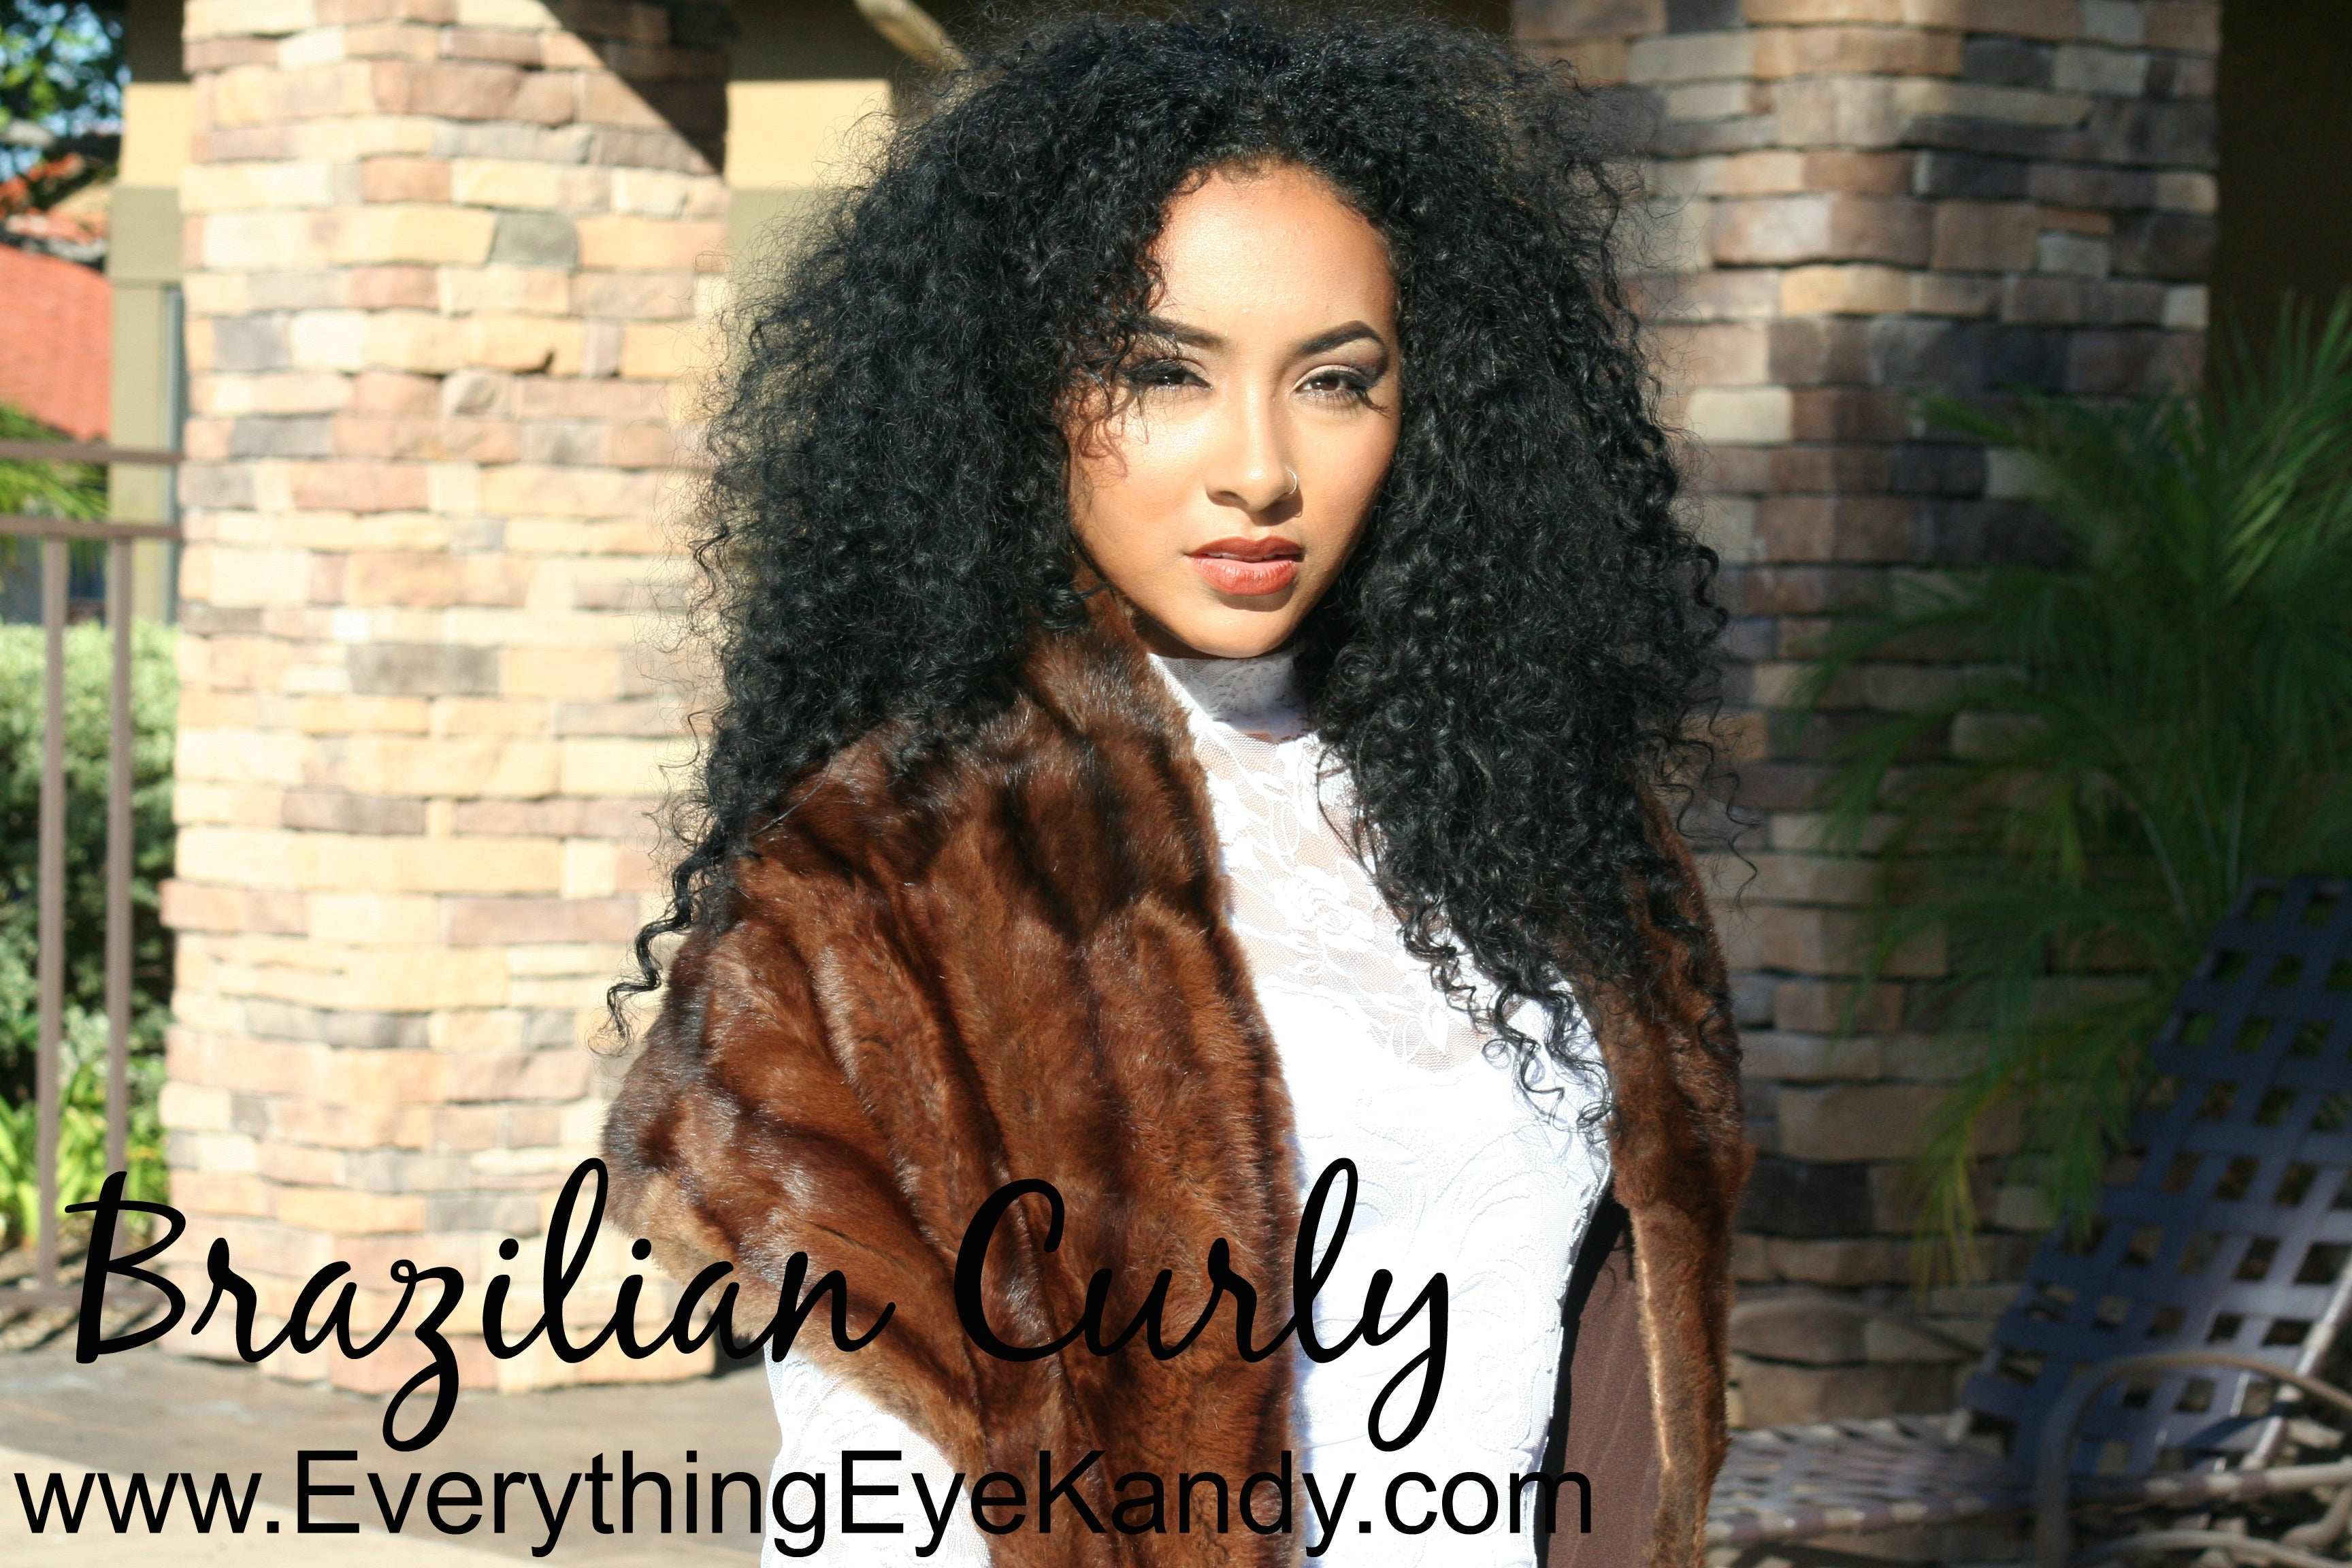 EVERYTHINGEYEKANDY.COM